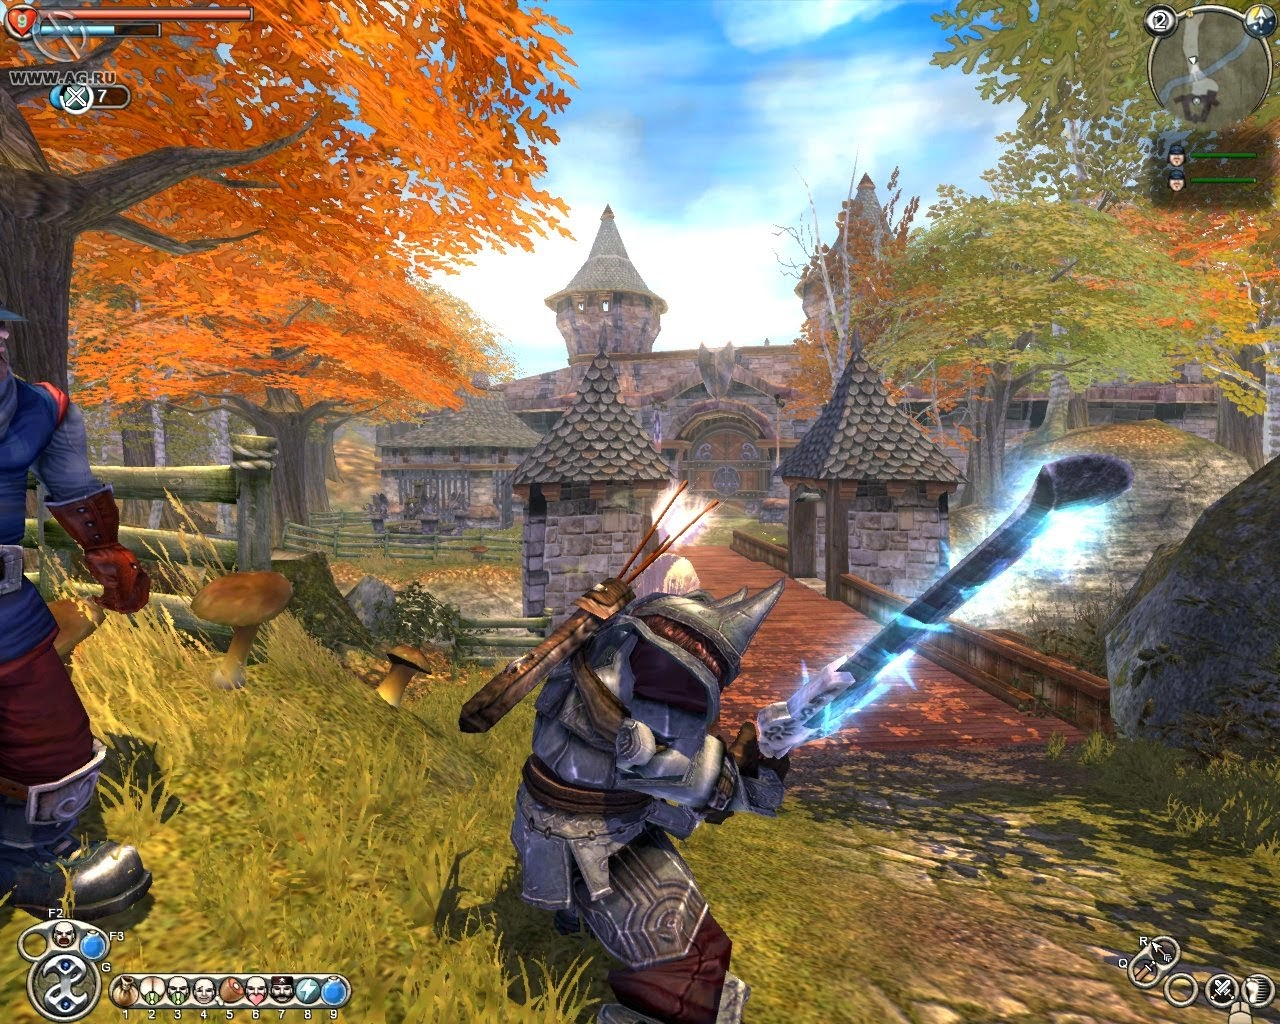 Download Fable 2 for free - System Wars - GameSpot